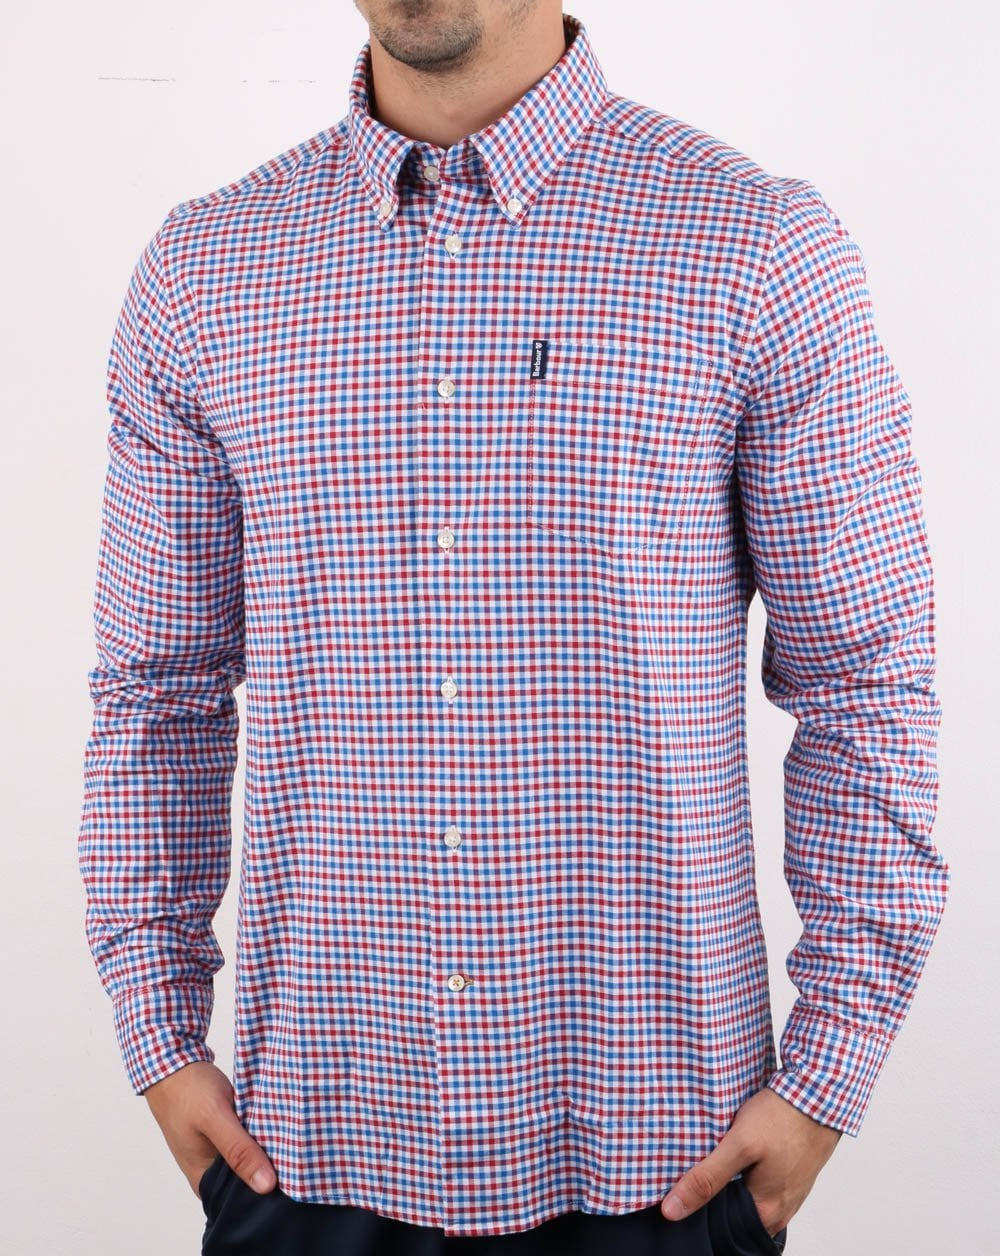 Barbour Gingham Check Shirt